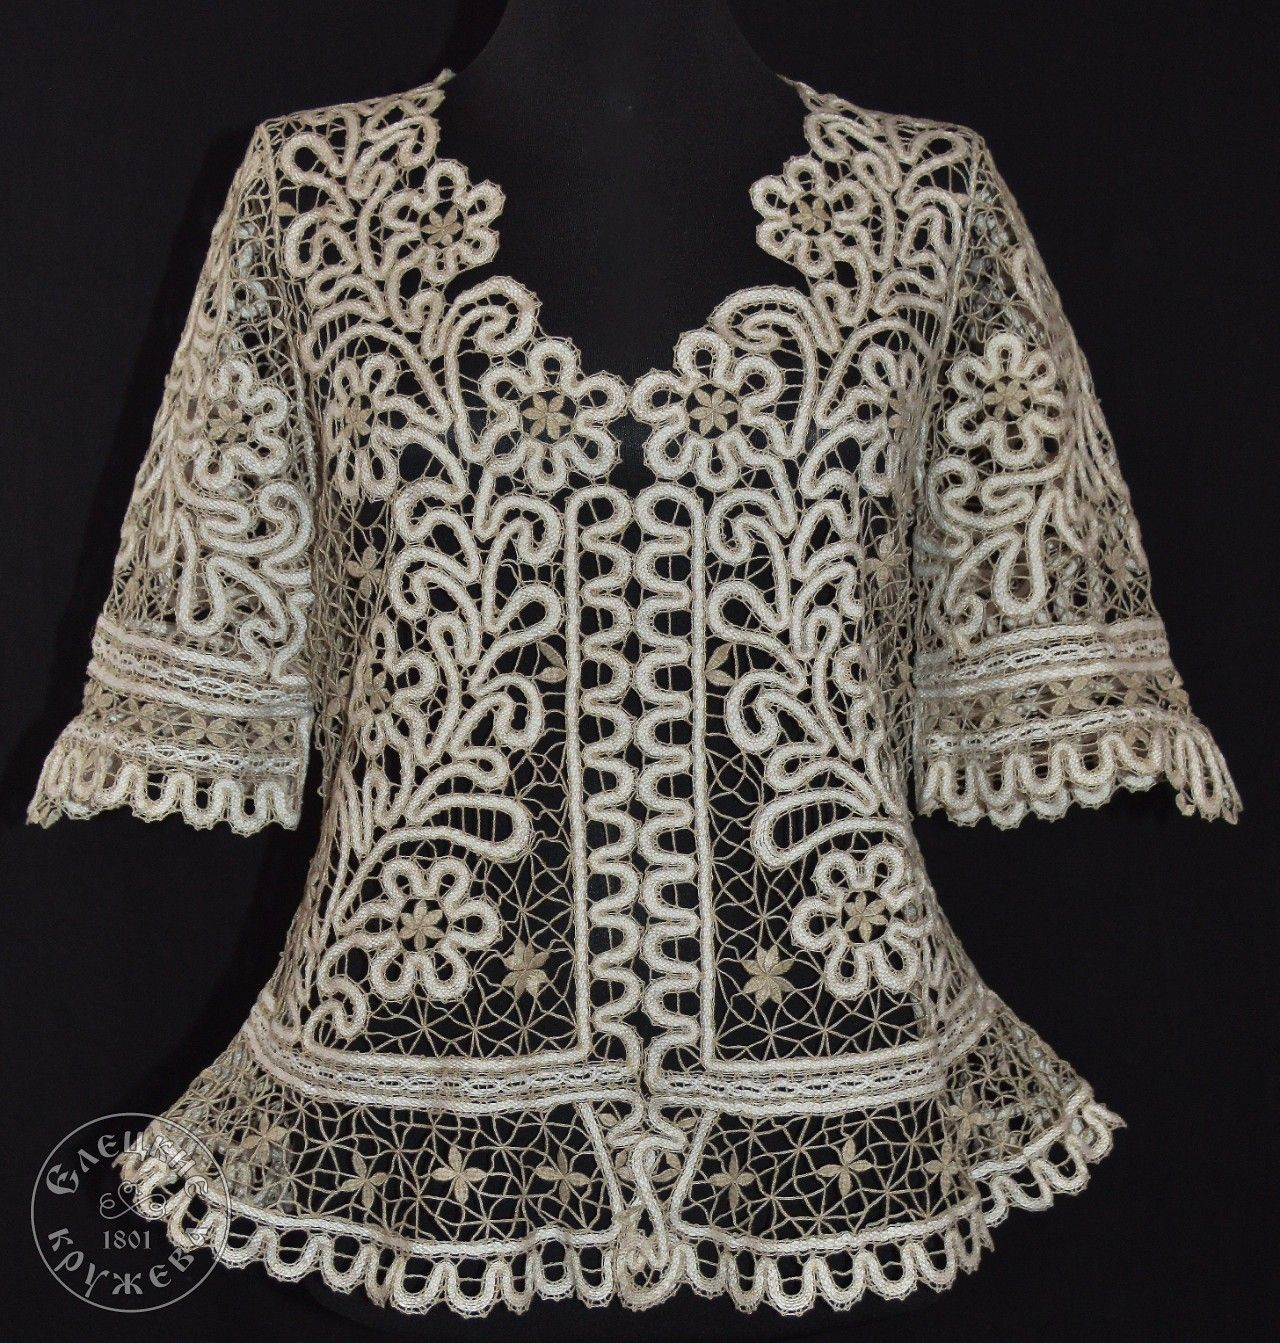 Yelets lace / Women's lace blouse 49-08